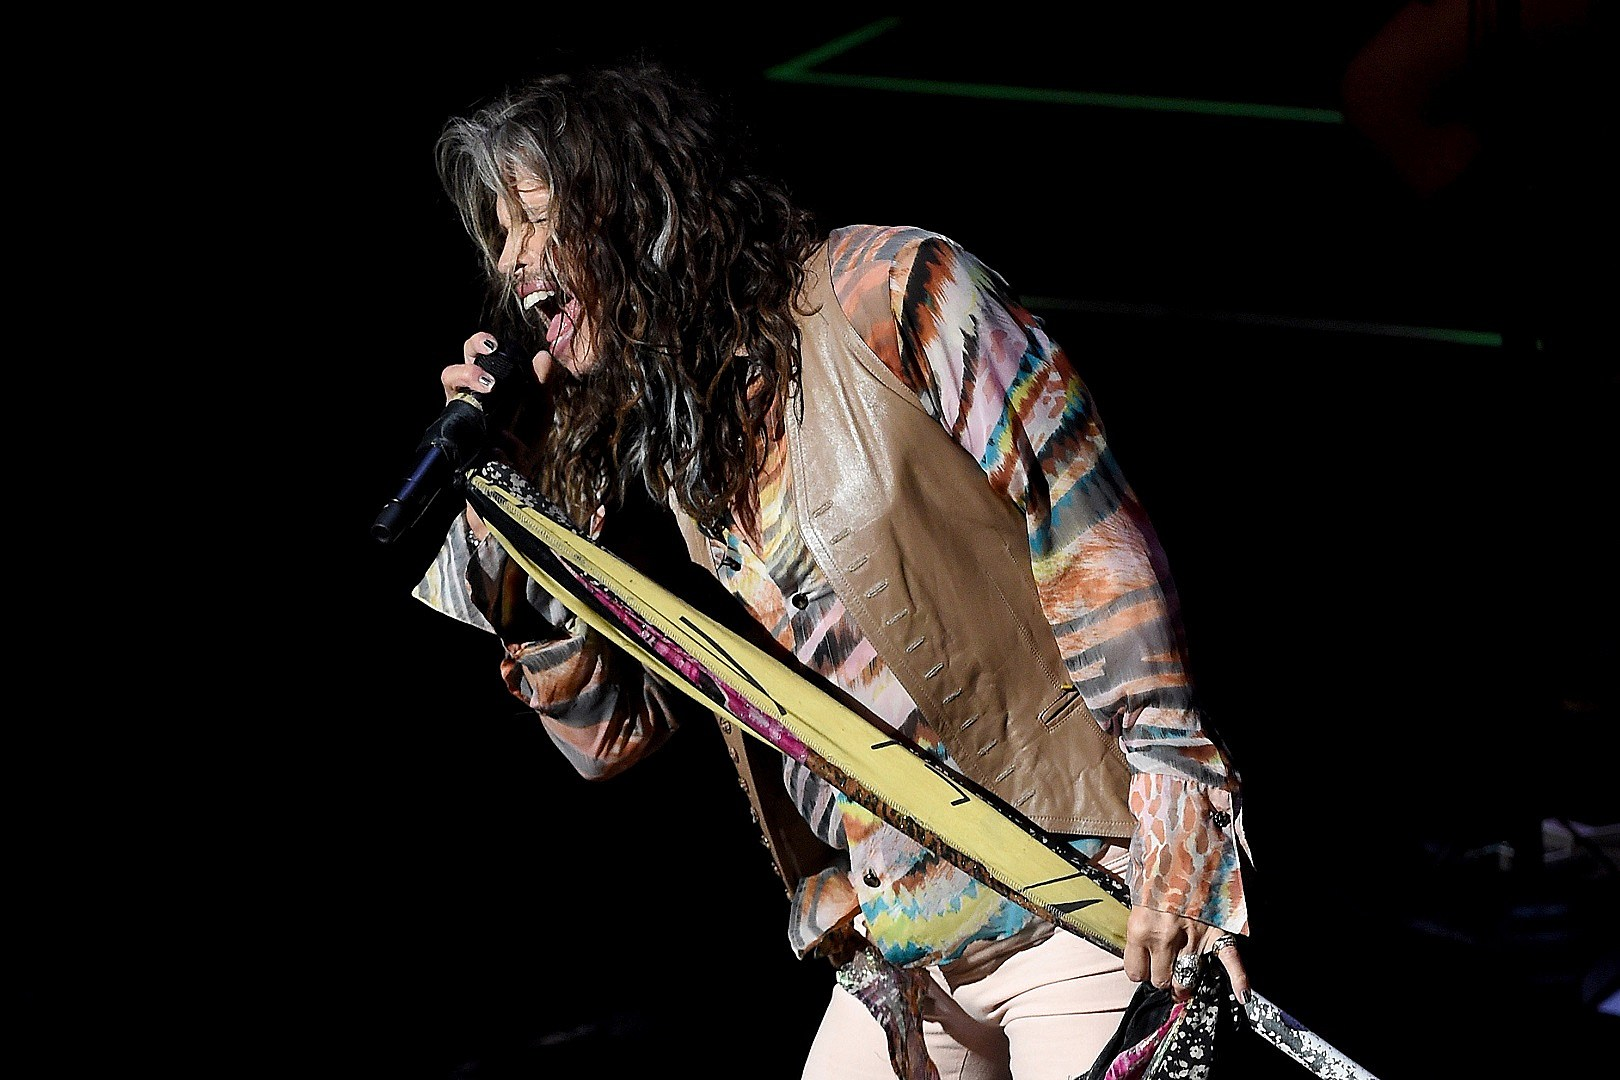 Steven Tyler suffered seizure in Brazil